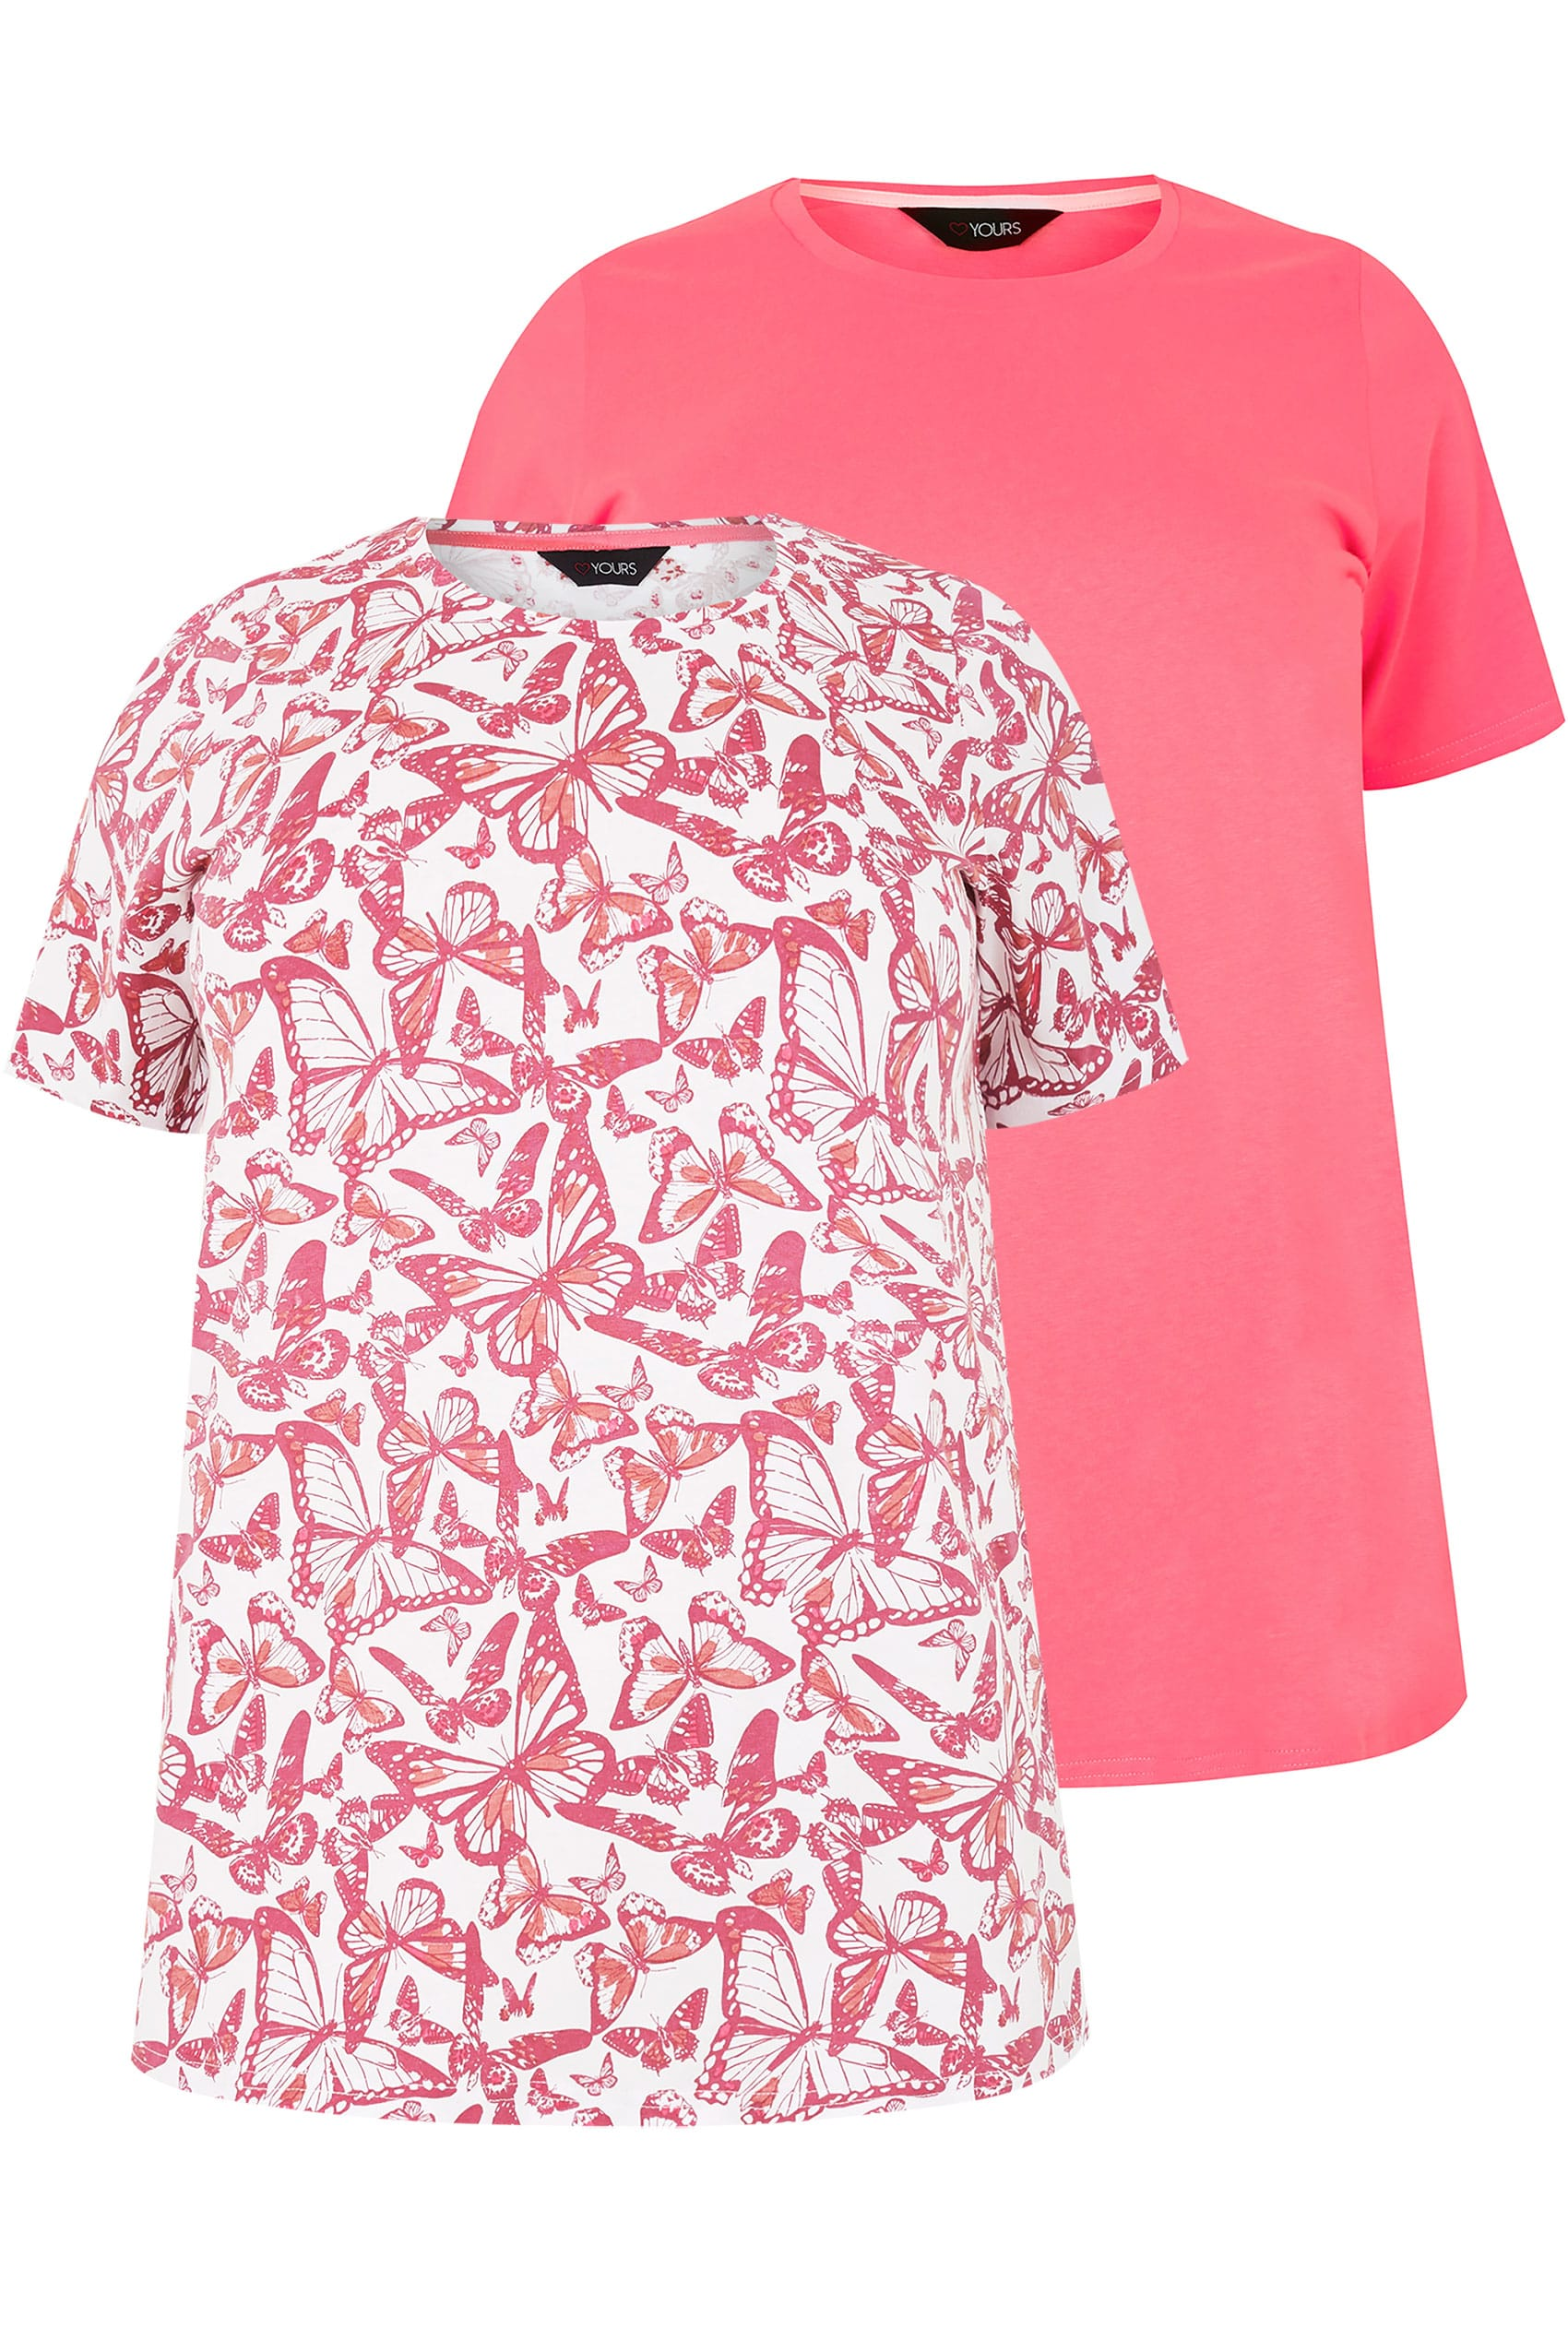 2 pack pink butterfly printed plain t shirts plus size for Quick print t shirts